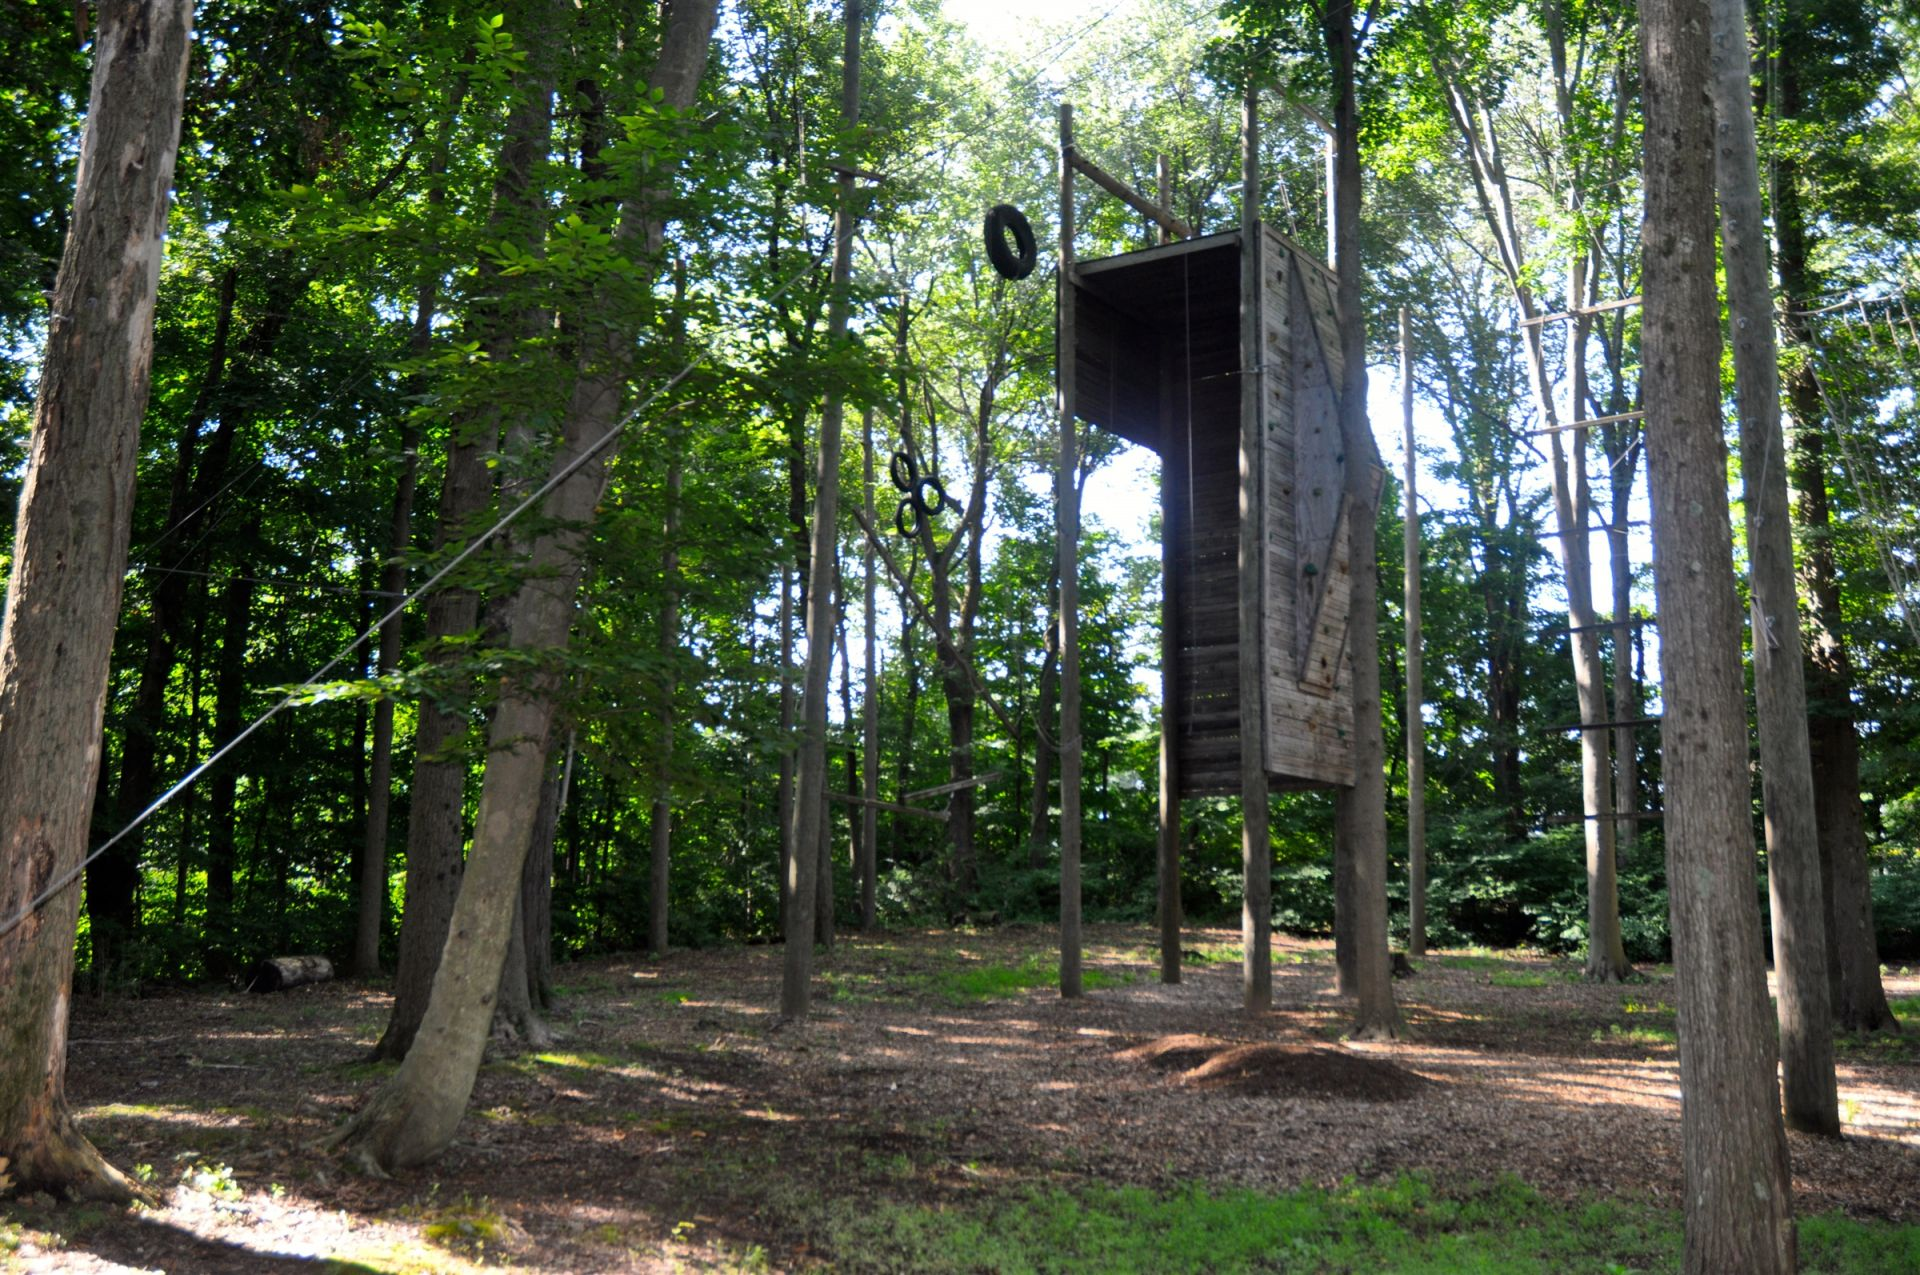 Cheshire Academy boasts a full Ropes Challenge Course on campus-- one of the few in Connecticut! In this outdoor course, personal challenges, experiential learning, and reflection help develop self-confidence, group cooperation, leadership, and decision-making skills.